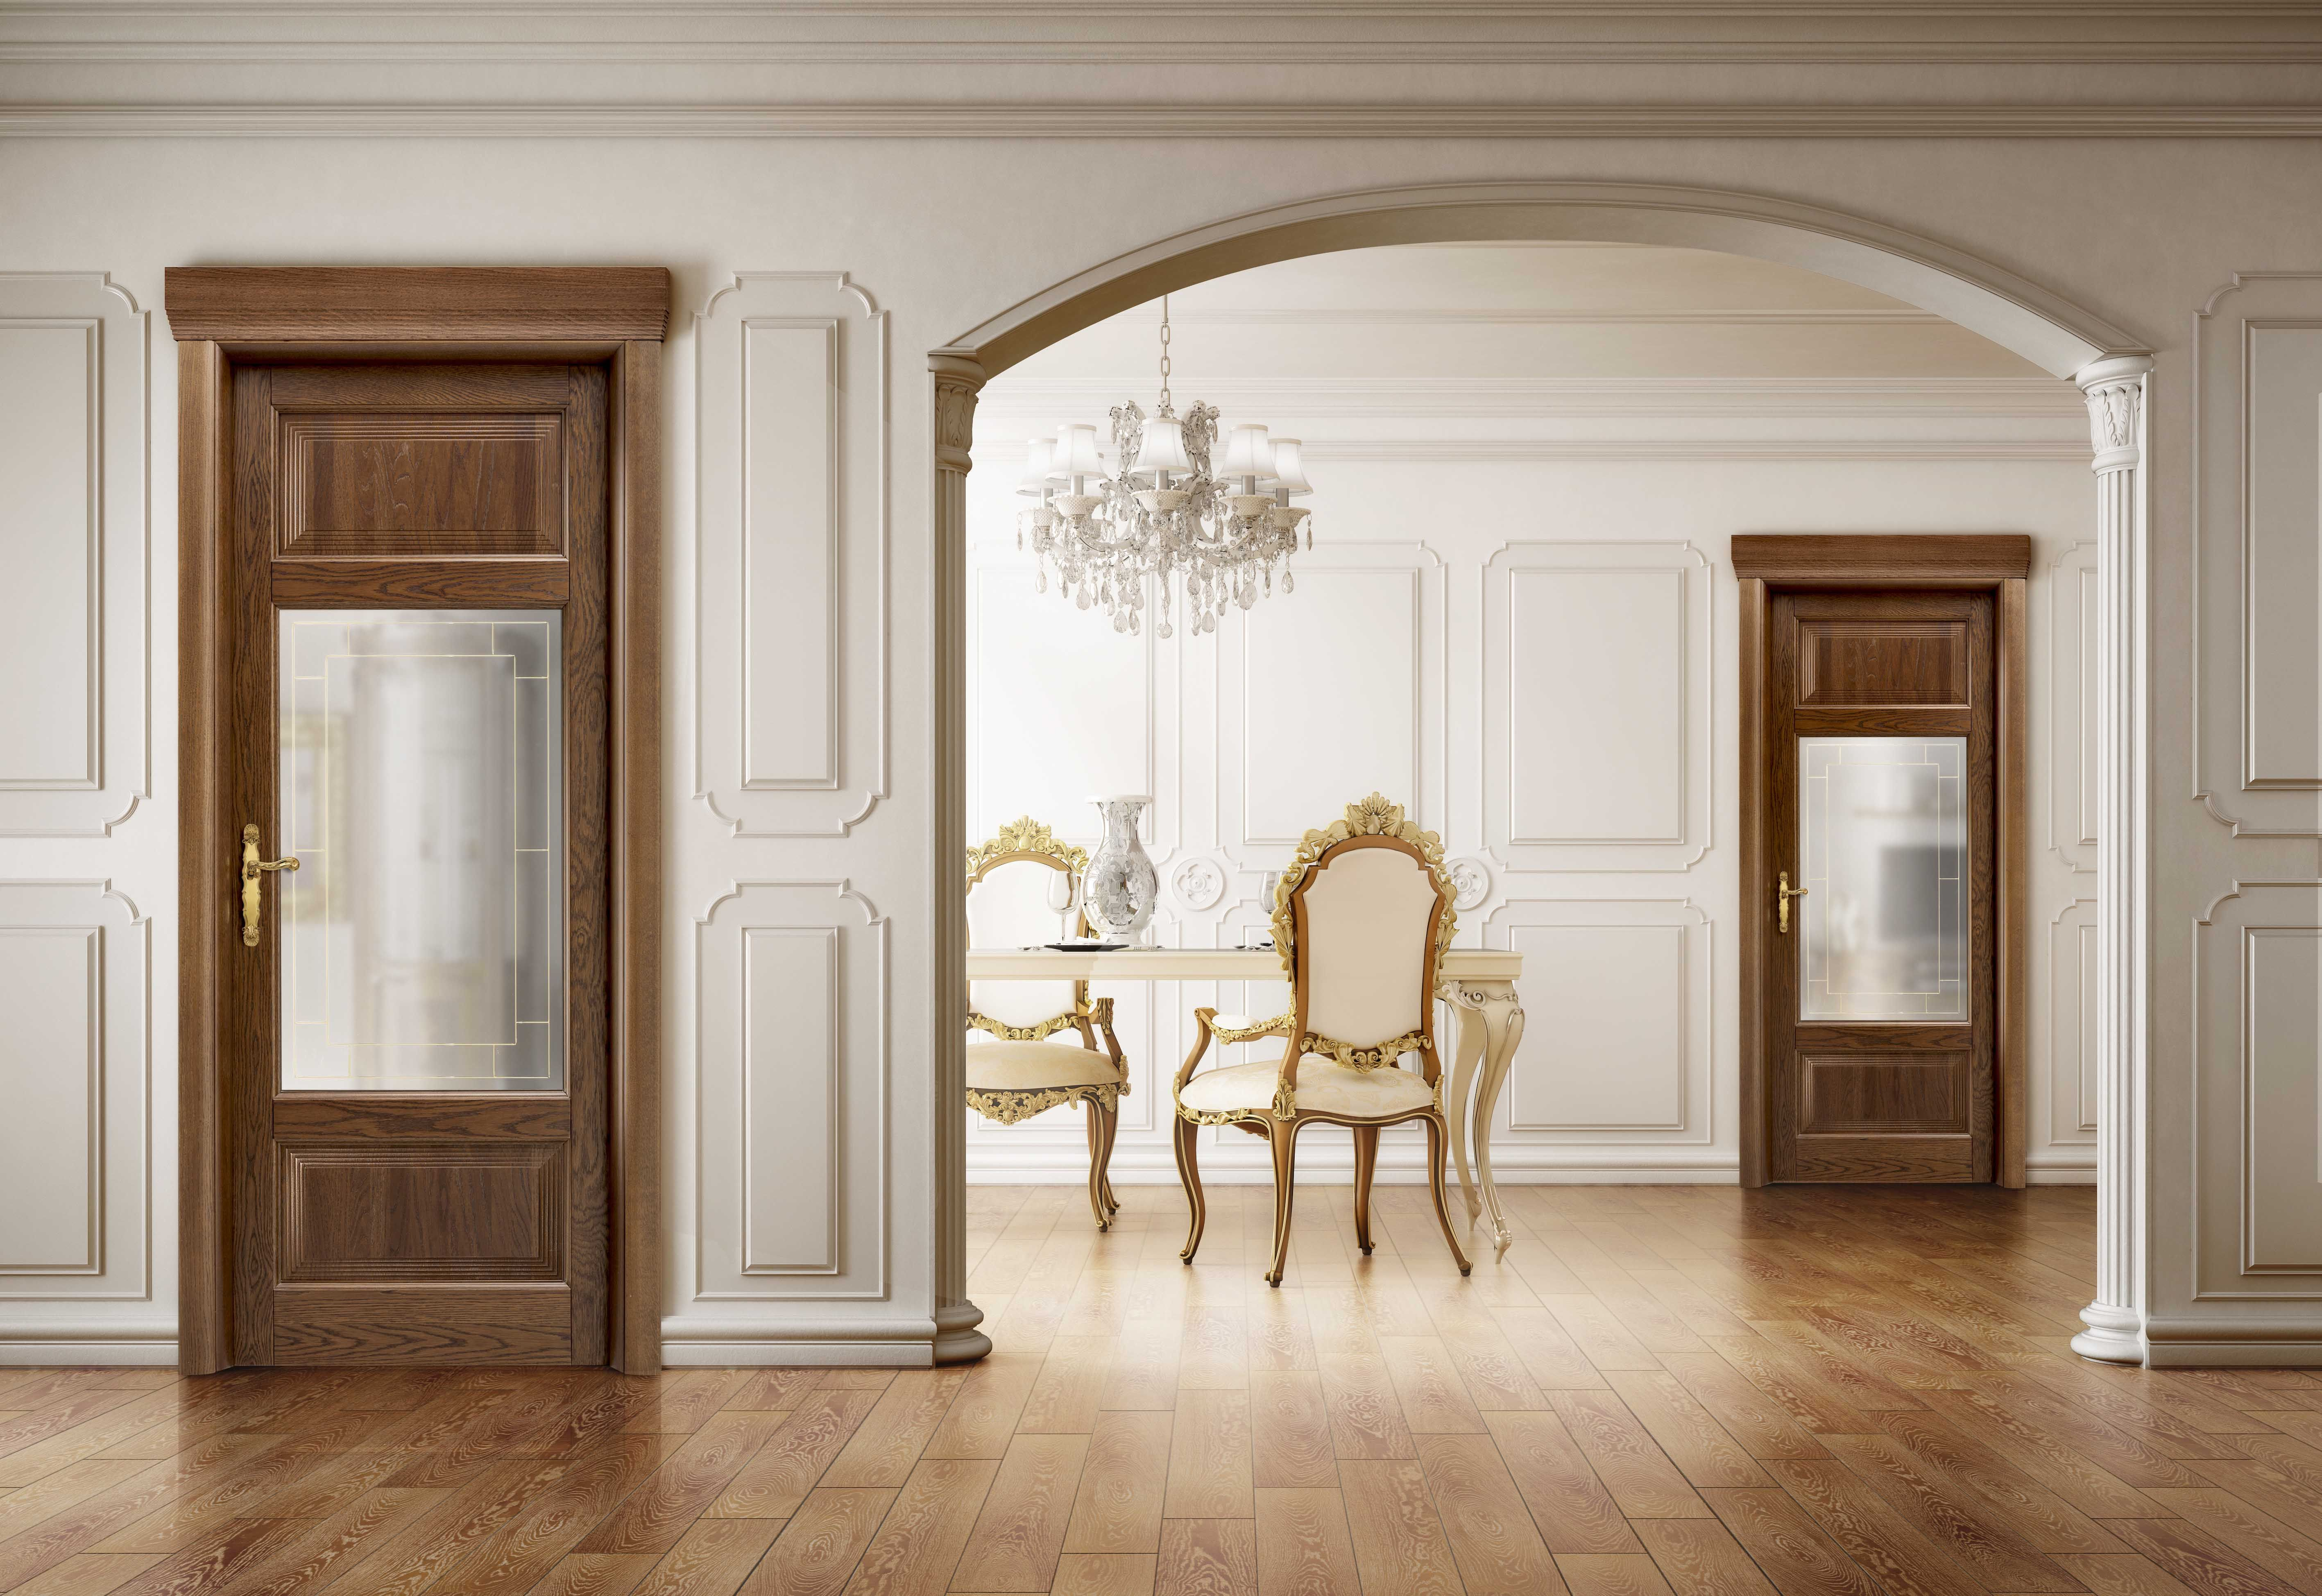 Hopera Romagnoli Porte - solid wood doors & Hopera Romagnoli Porte - solid wood doors | Luxury Prestige doors ...